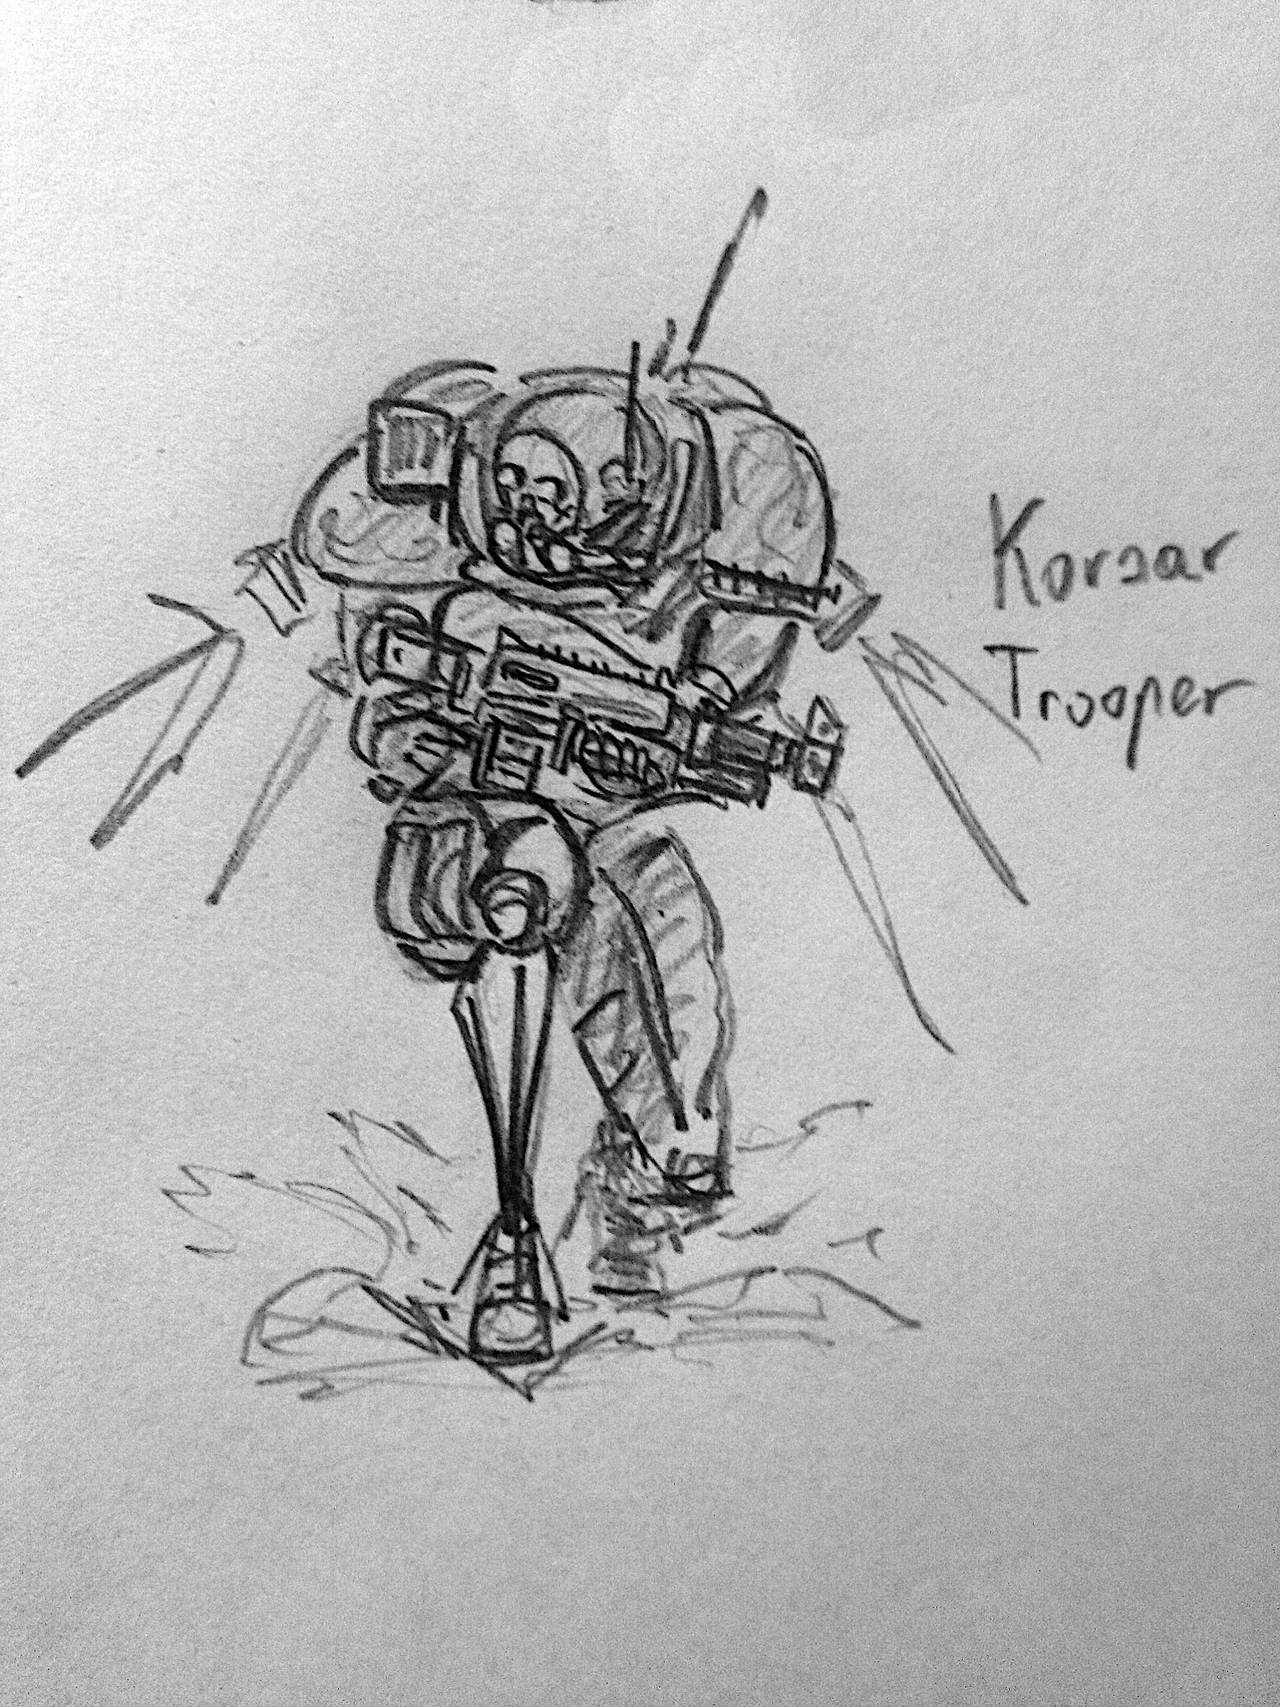 korsar_trooper_2_0_by_huginthecrowda_dcx